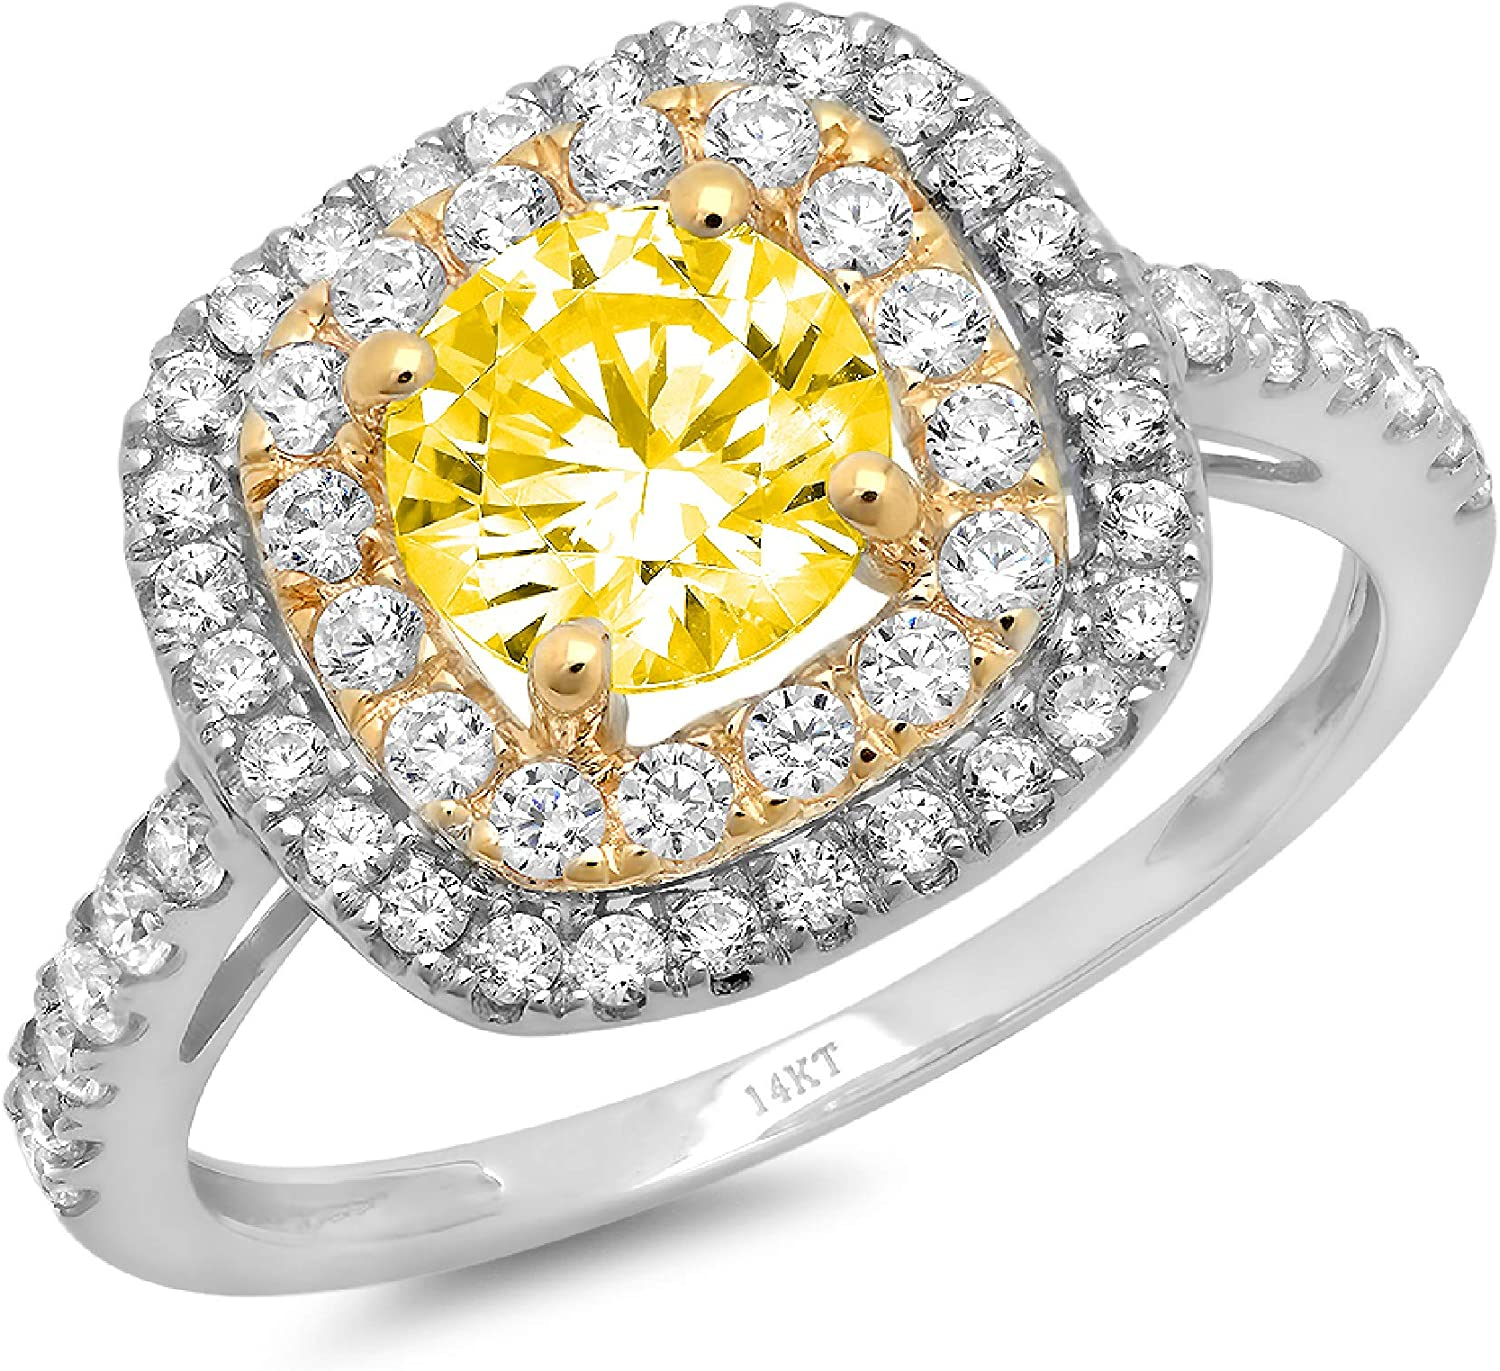 1.69ct Round Cut Solitaire double Halo Canary Yellow Ideal VVS1 Simulated Diamond CZ Engagement Promise Statement Anniversary Bridal Wedding Accent Ring 14k White & Yellow Gold